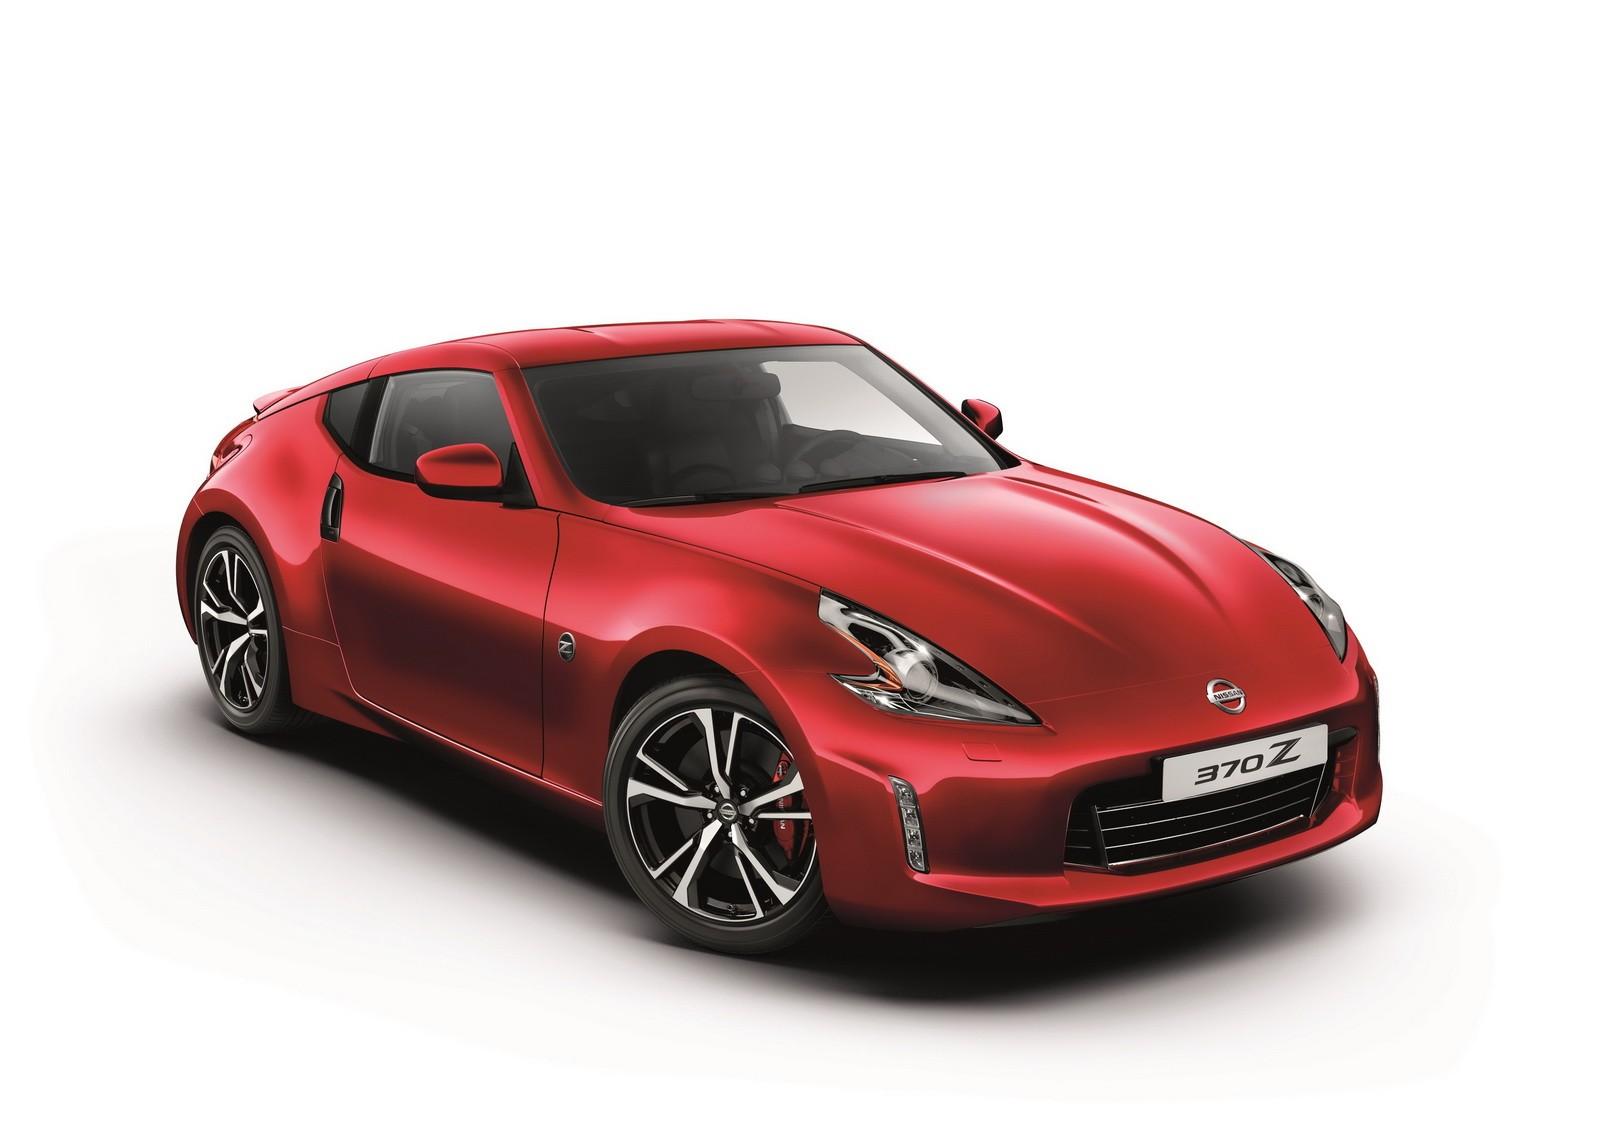 2018 nissan 370z revealed ahead of frankfurt motor show debut autoevolution. Black Bedroom Furniture Sets. Home Design Ideas